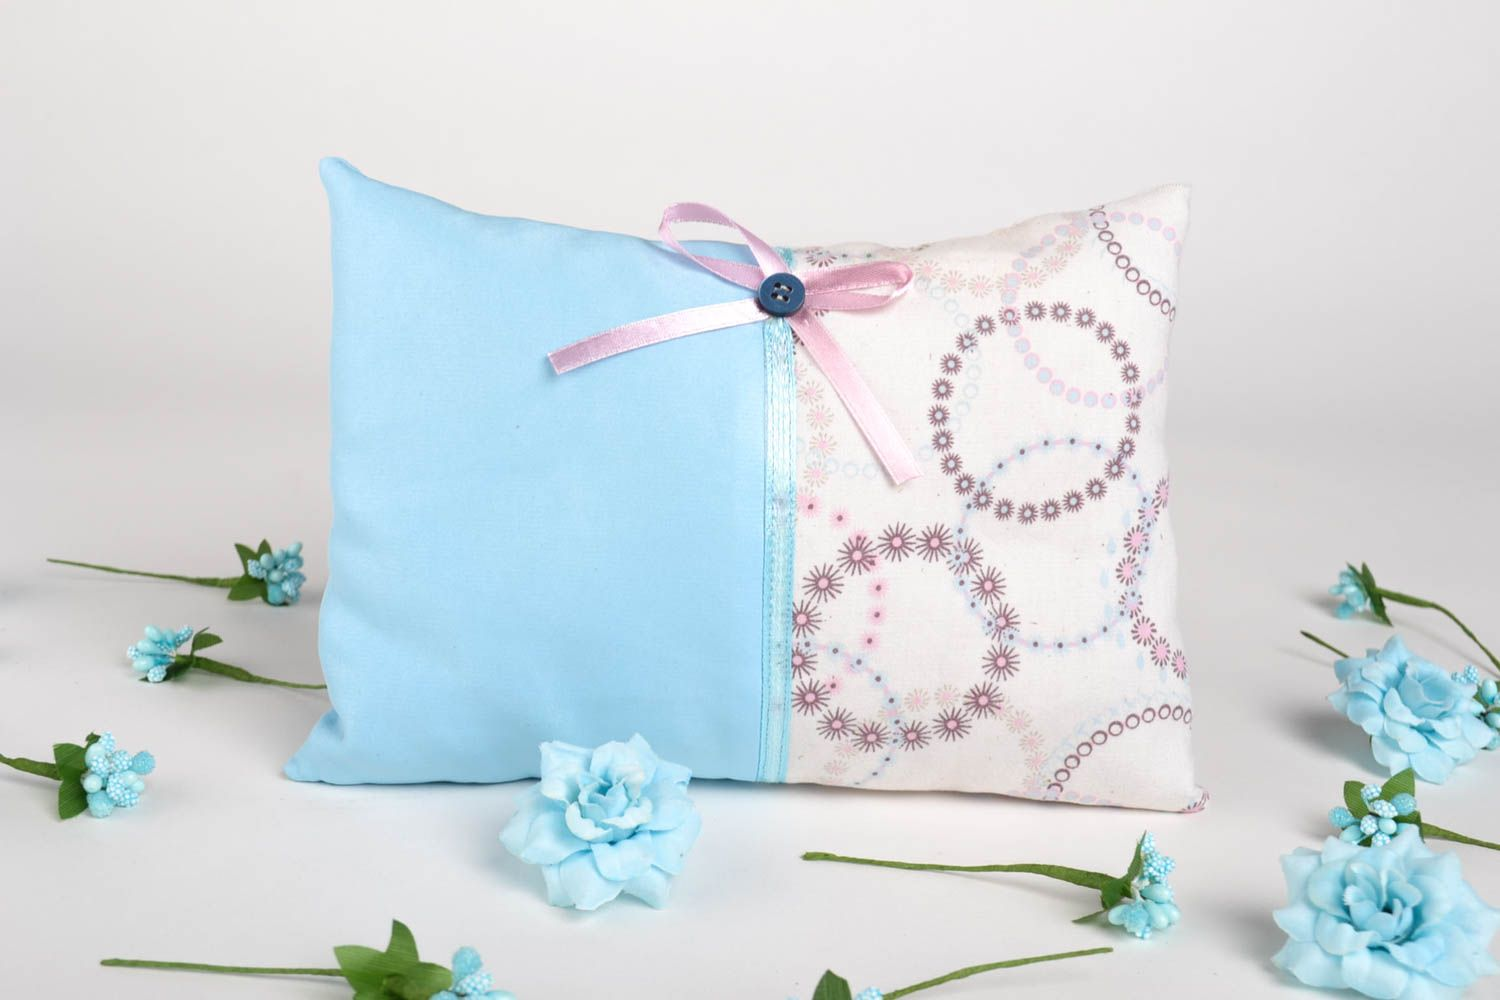 Handmade scented sachet home decoration therapeutic pillows homemade gifts  photo 1